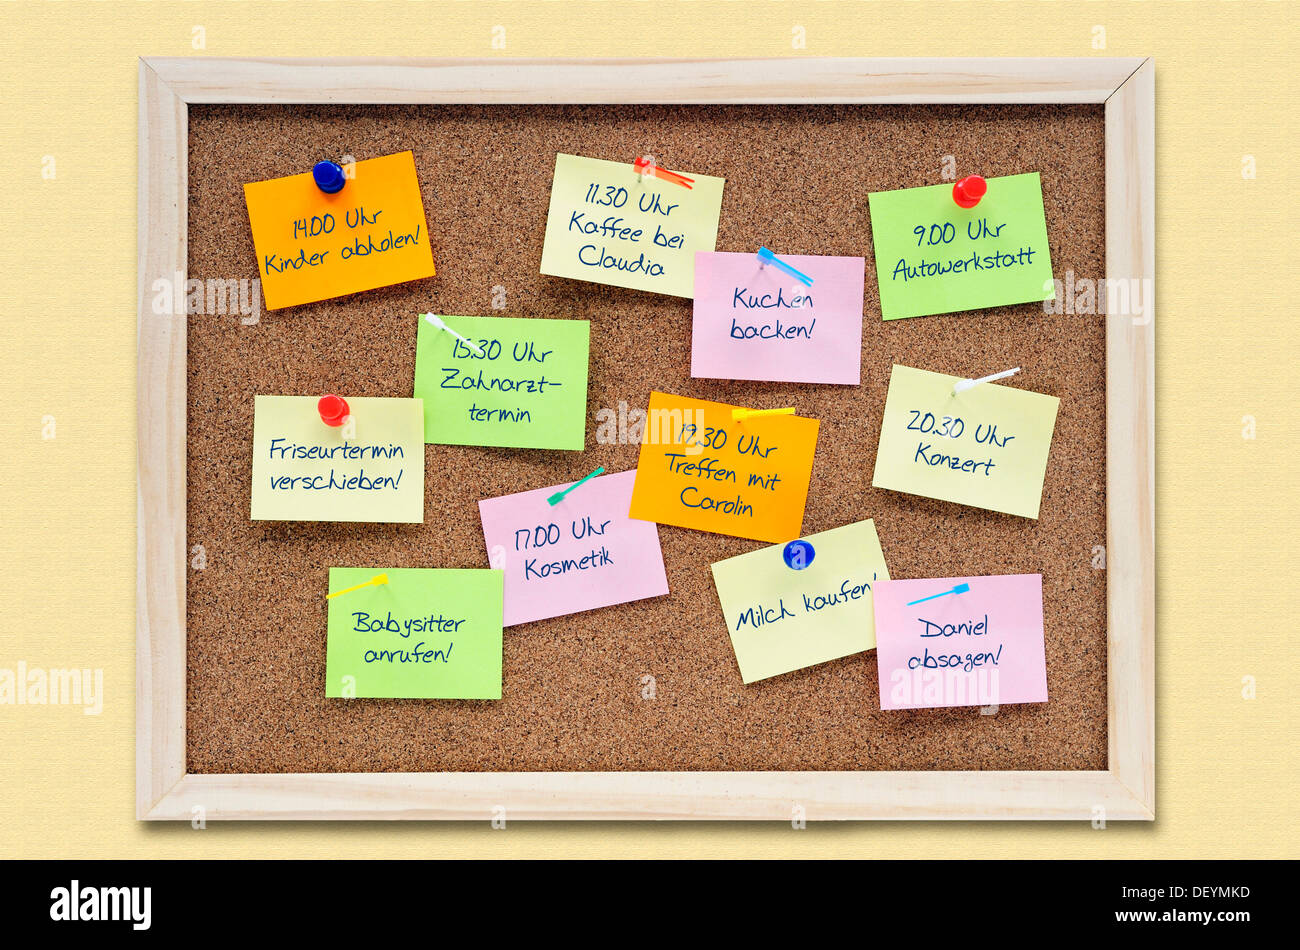 Pinboard with notes, appointments, symbolic image illustrating schedule difficulties - Stock Image